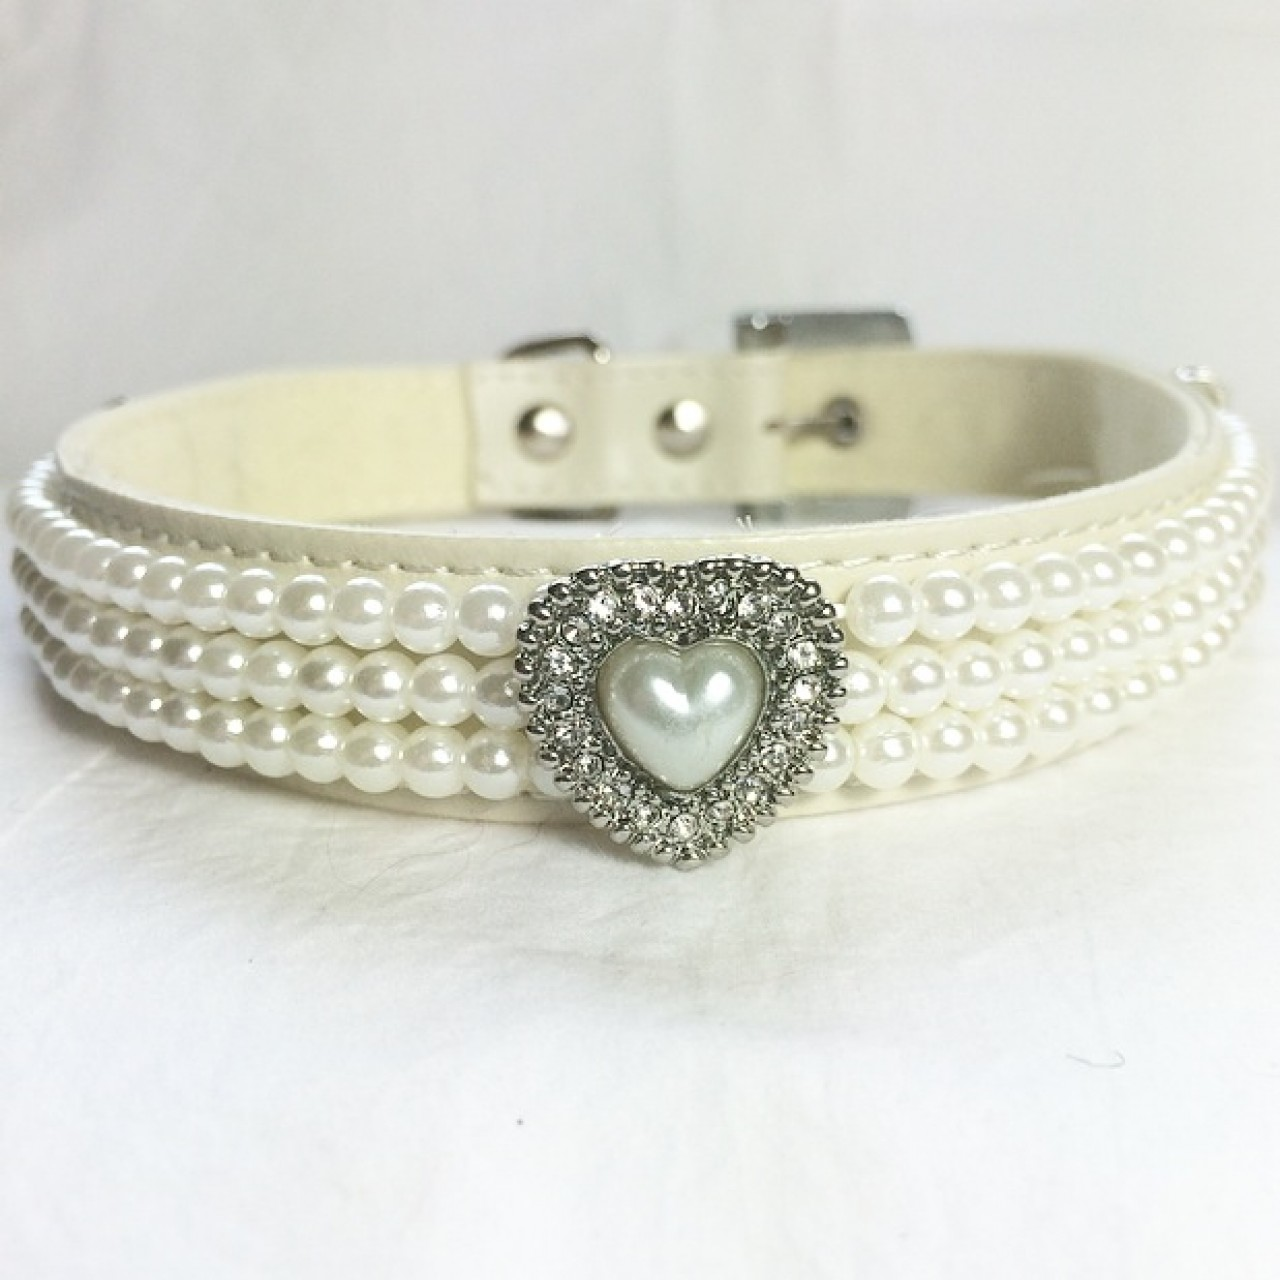 Bling Dog Collar And Leads